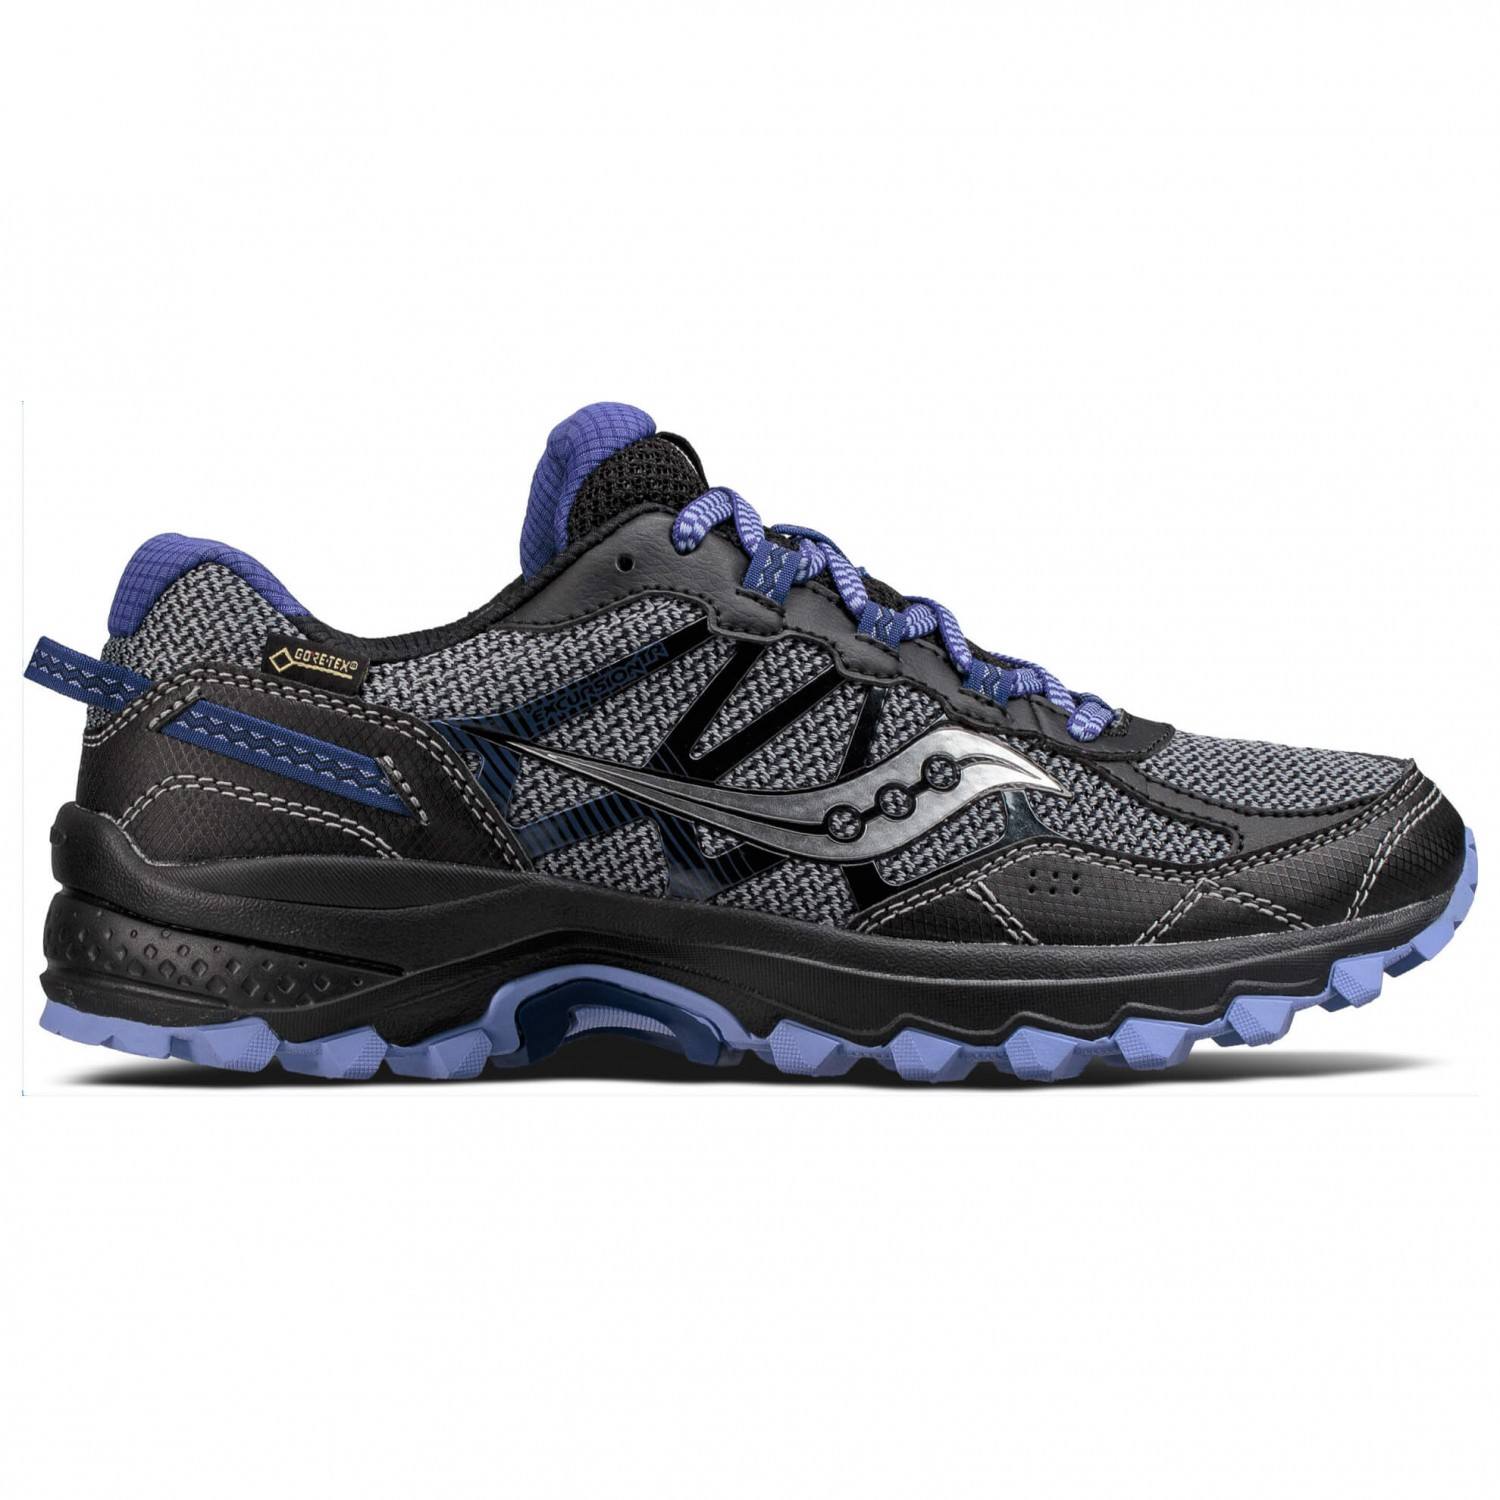 Saucony Excursion TR11 Gore-Tex Trail Running Shoes - Women's discount limited edition Yha8XOT